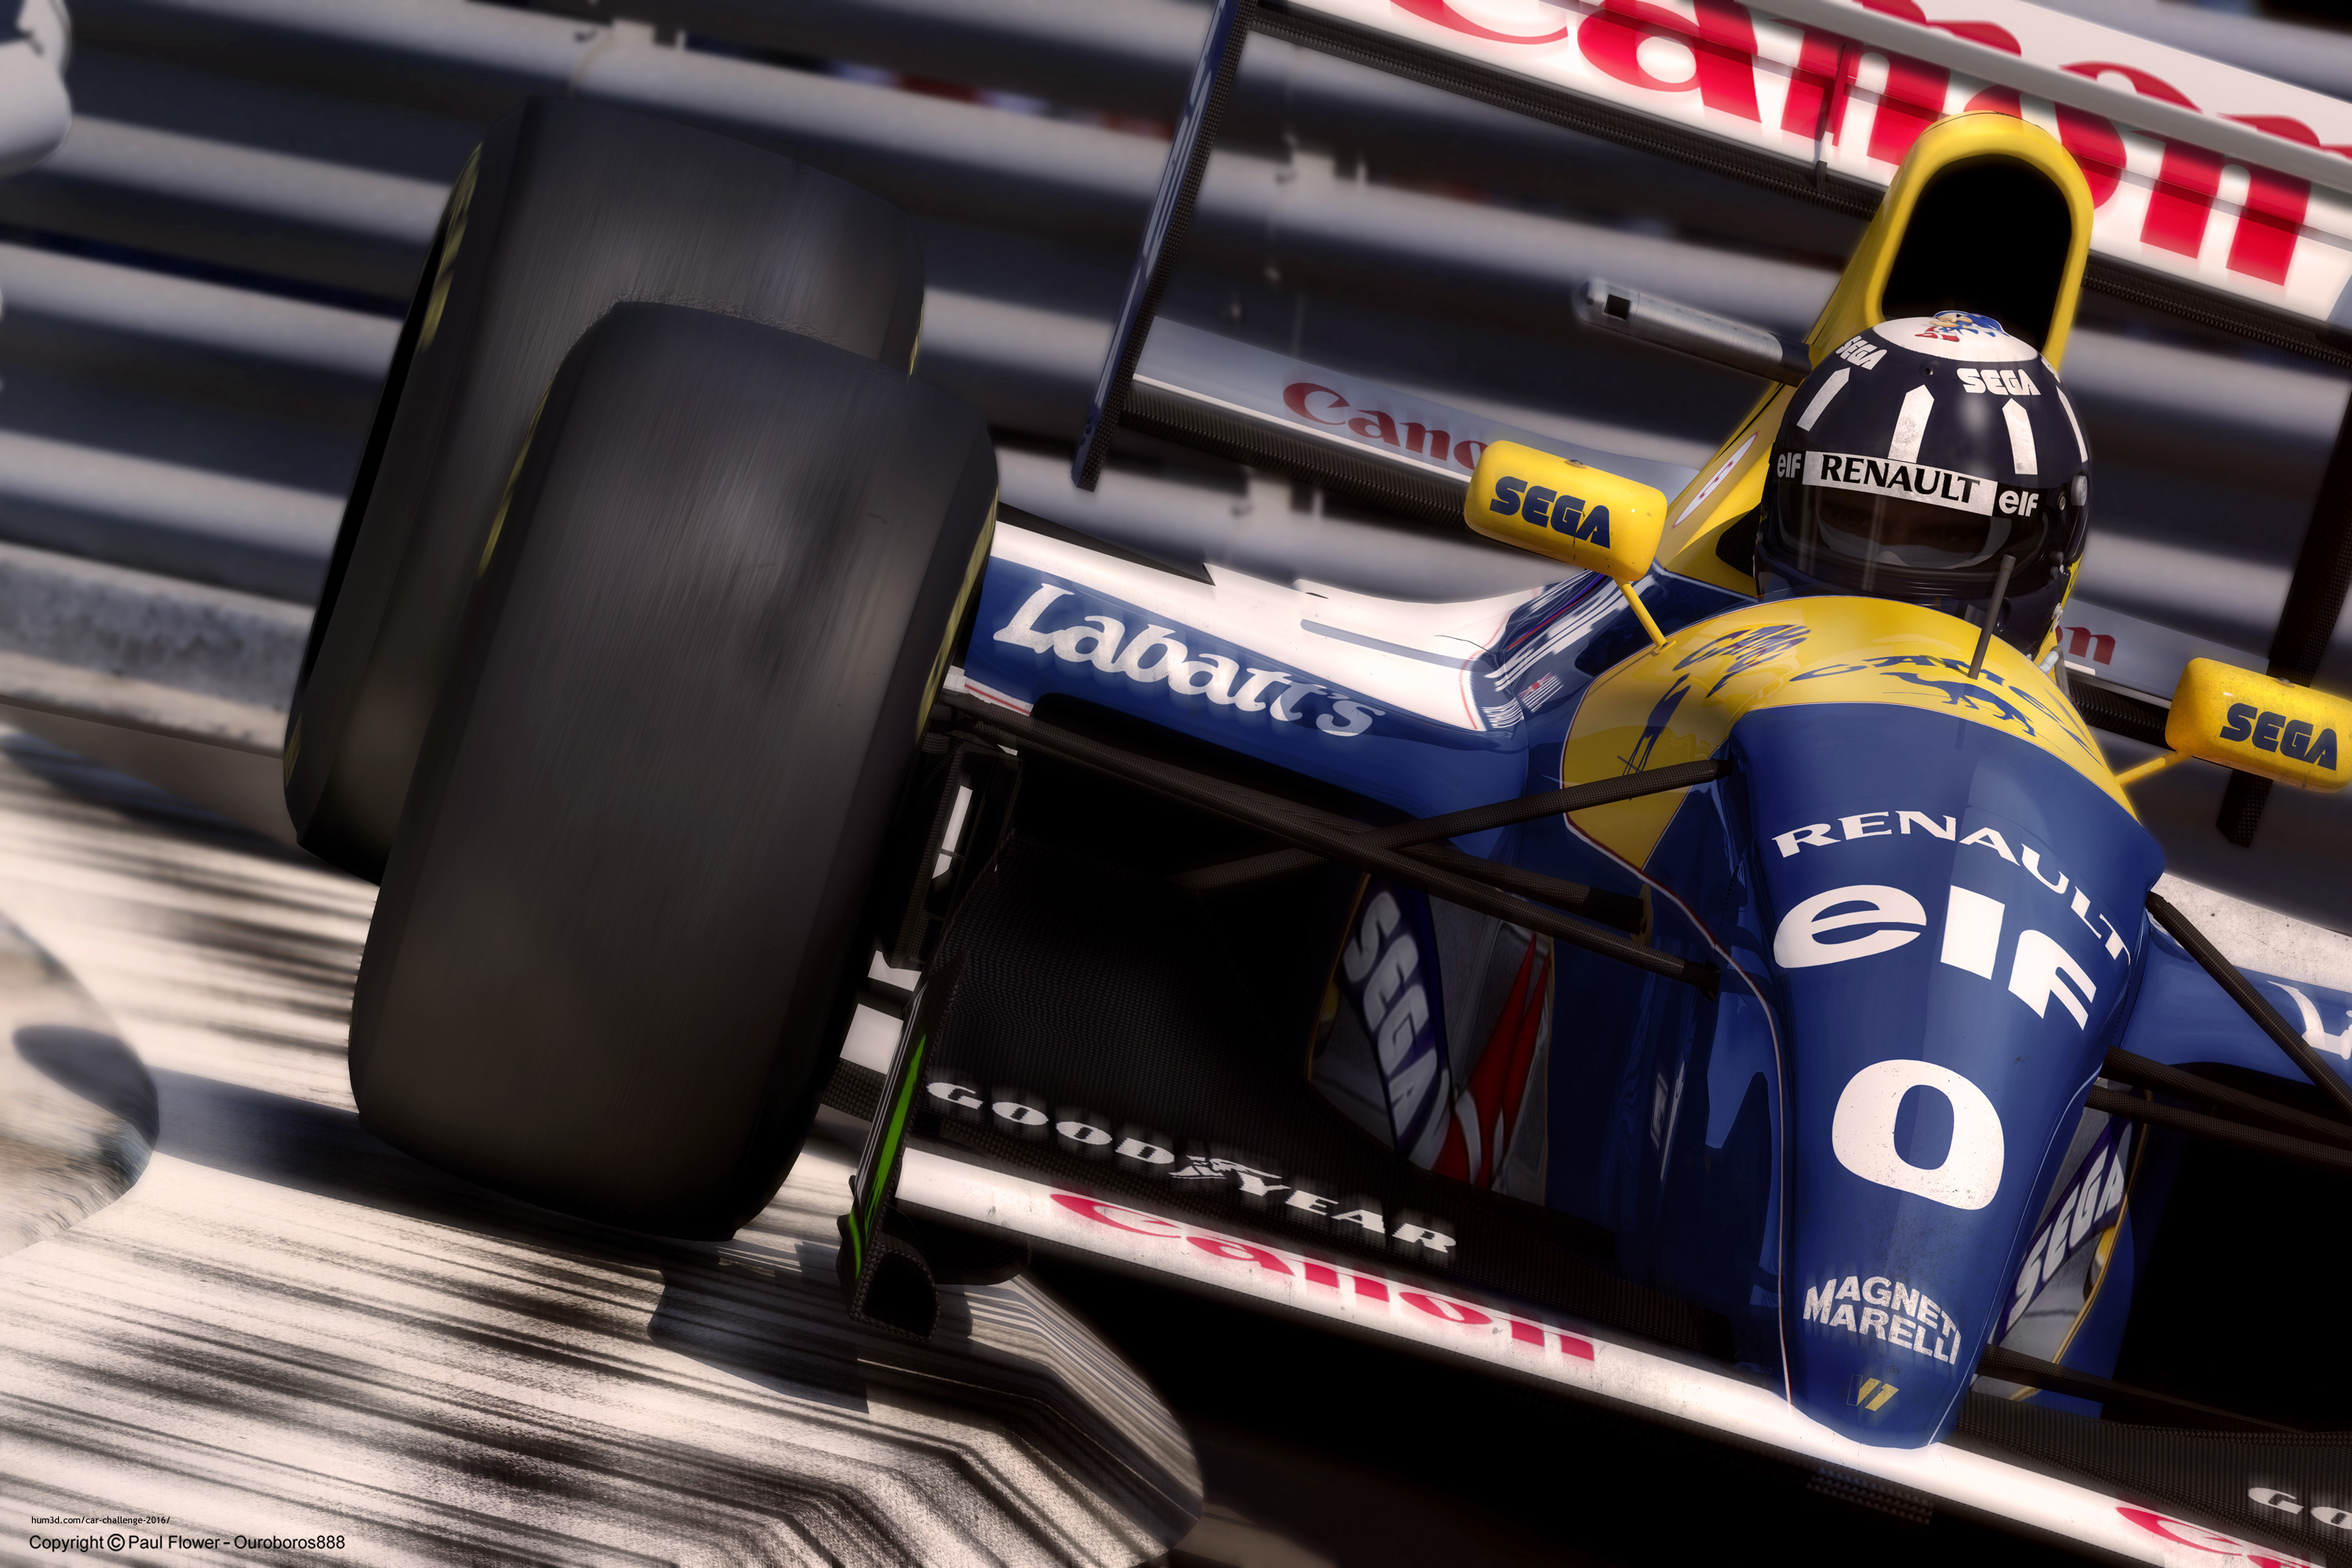 Damon Hill 3d art